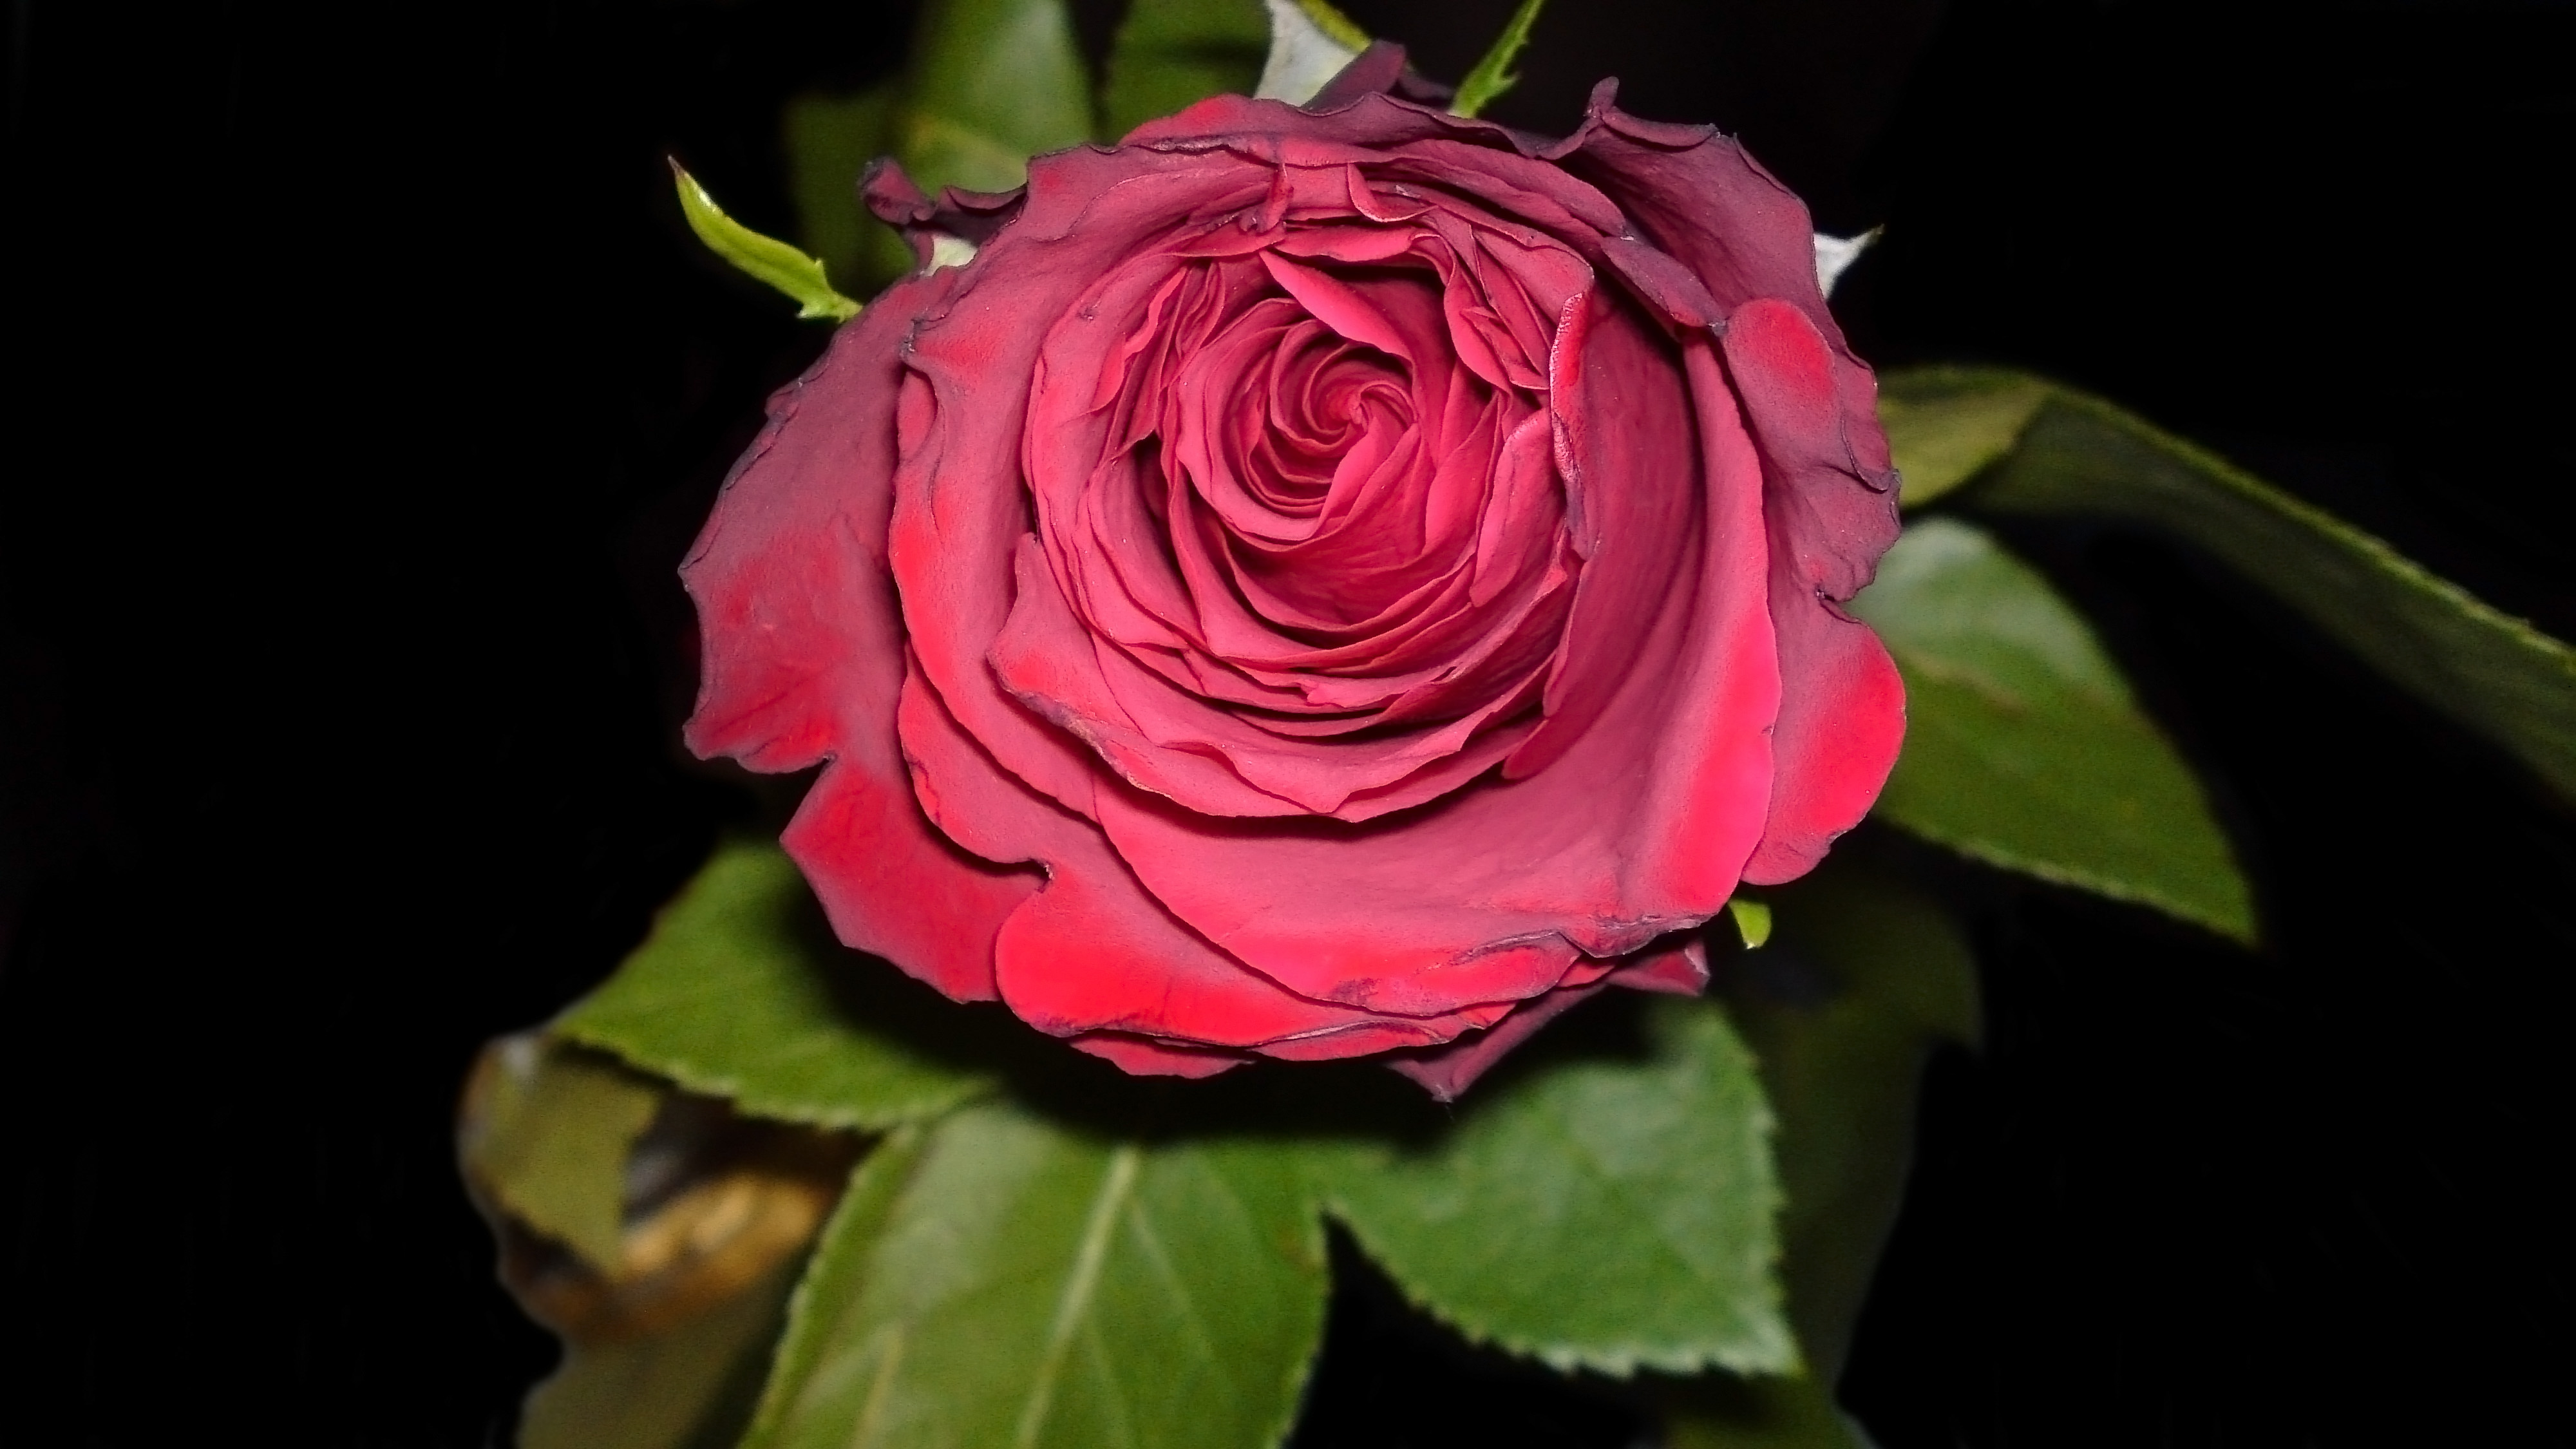 Earth - Rose  Colors Photography Pink Dark Green Leaf Flower Red Artistic Wallpaper